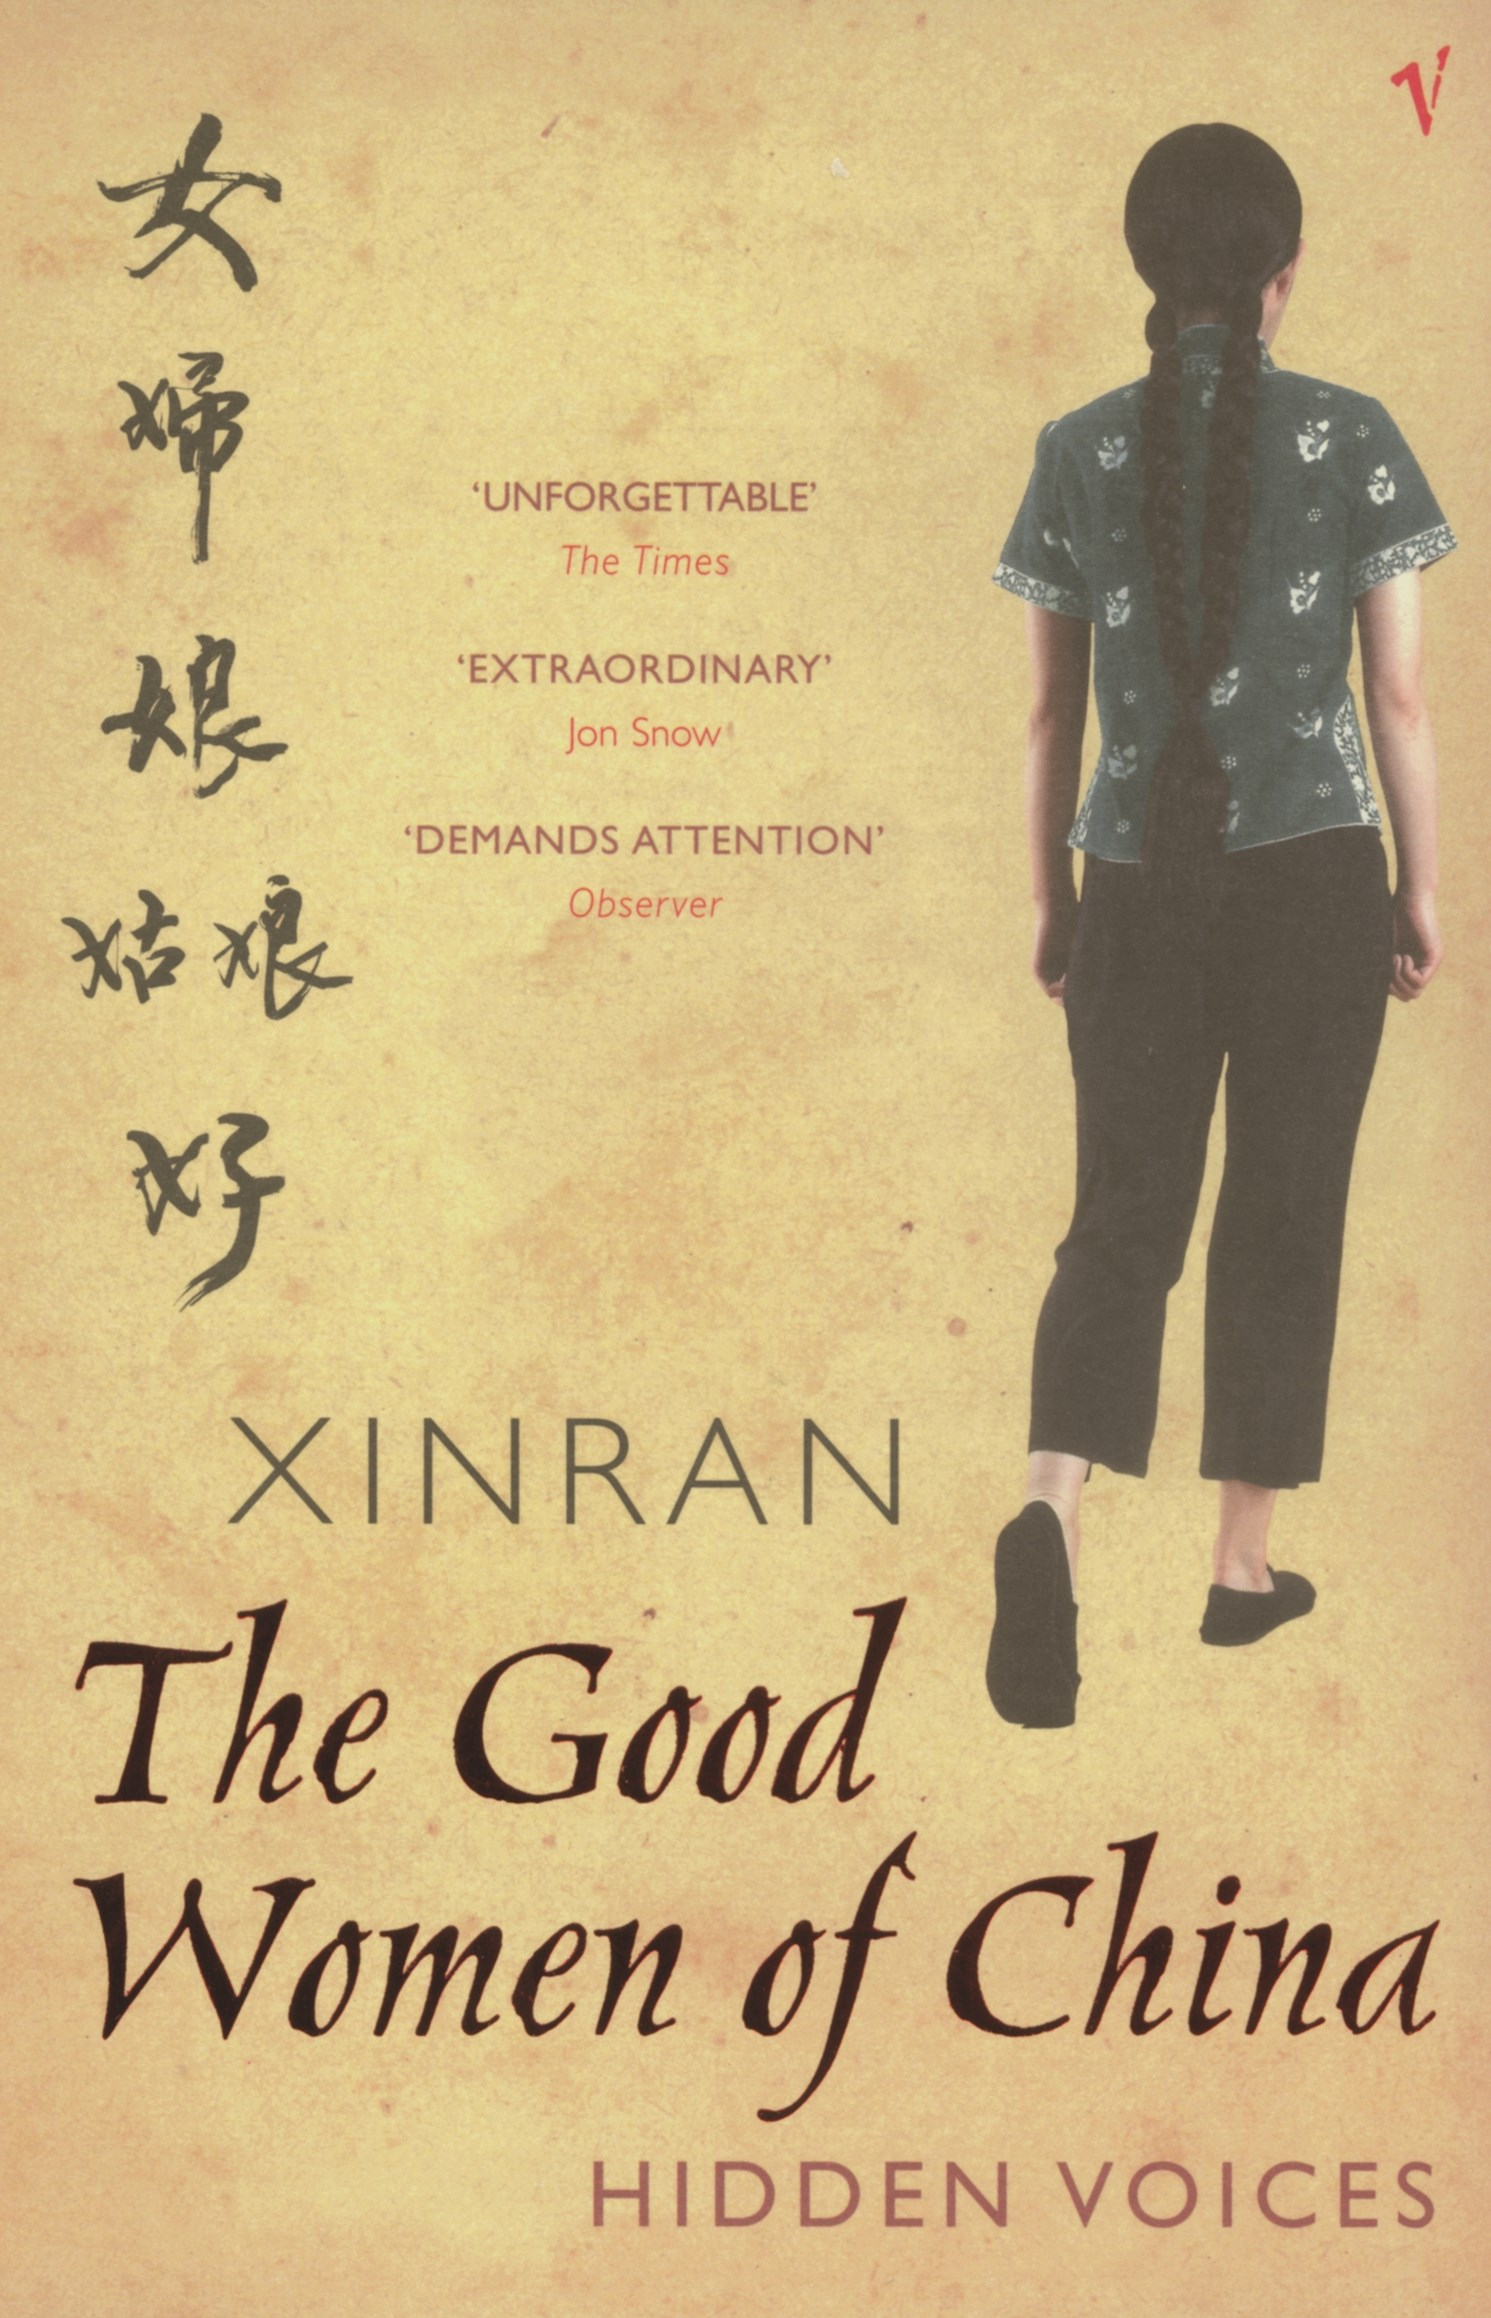 Good Women of China, The:Hidden Voices